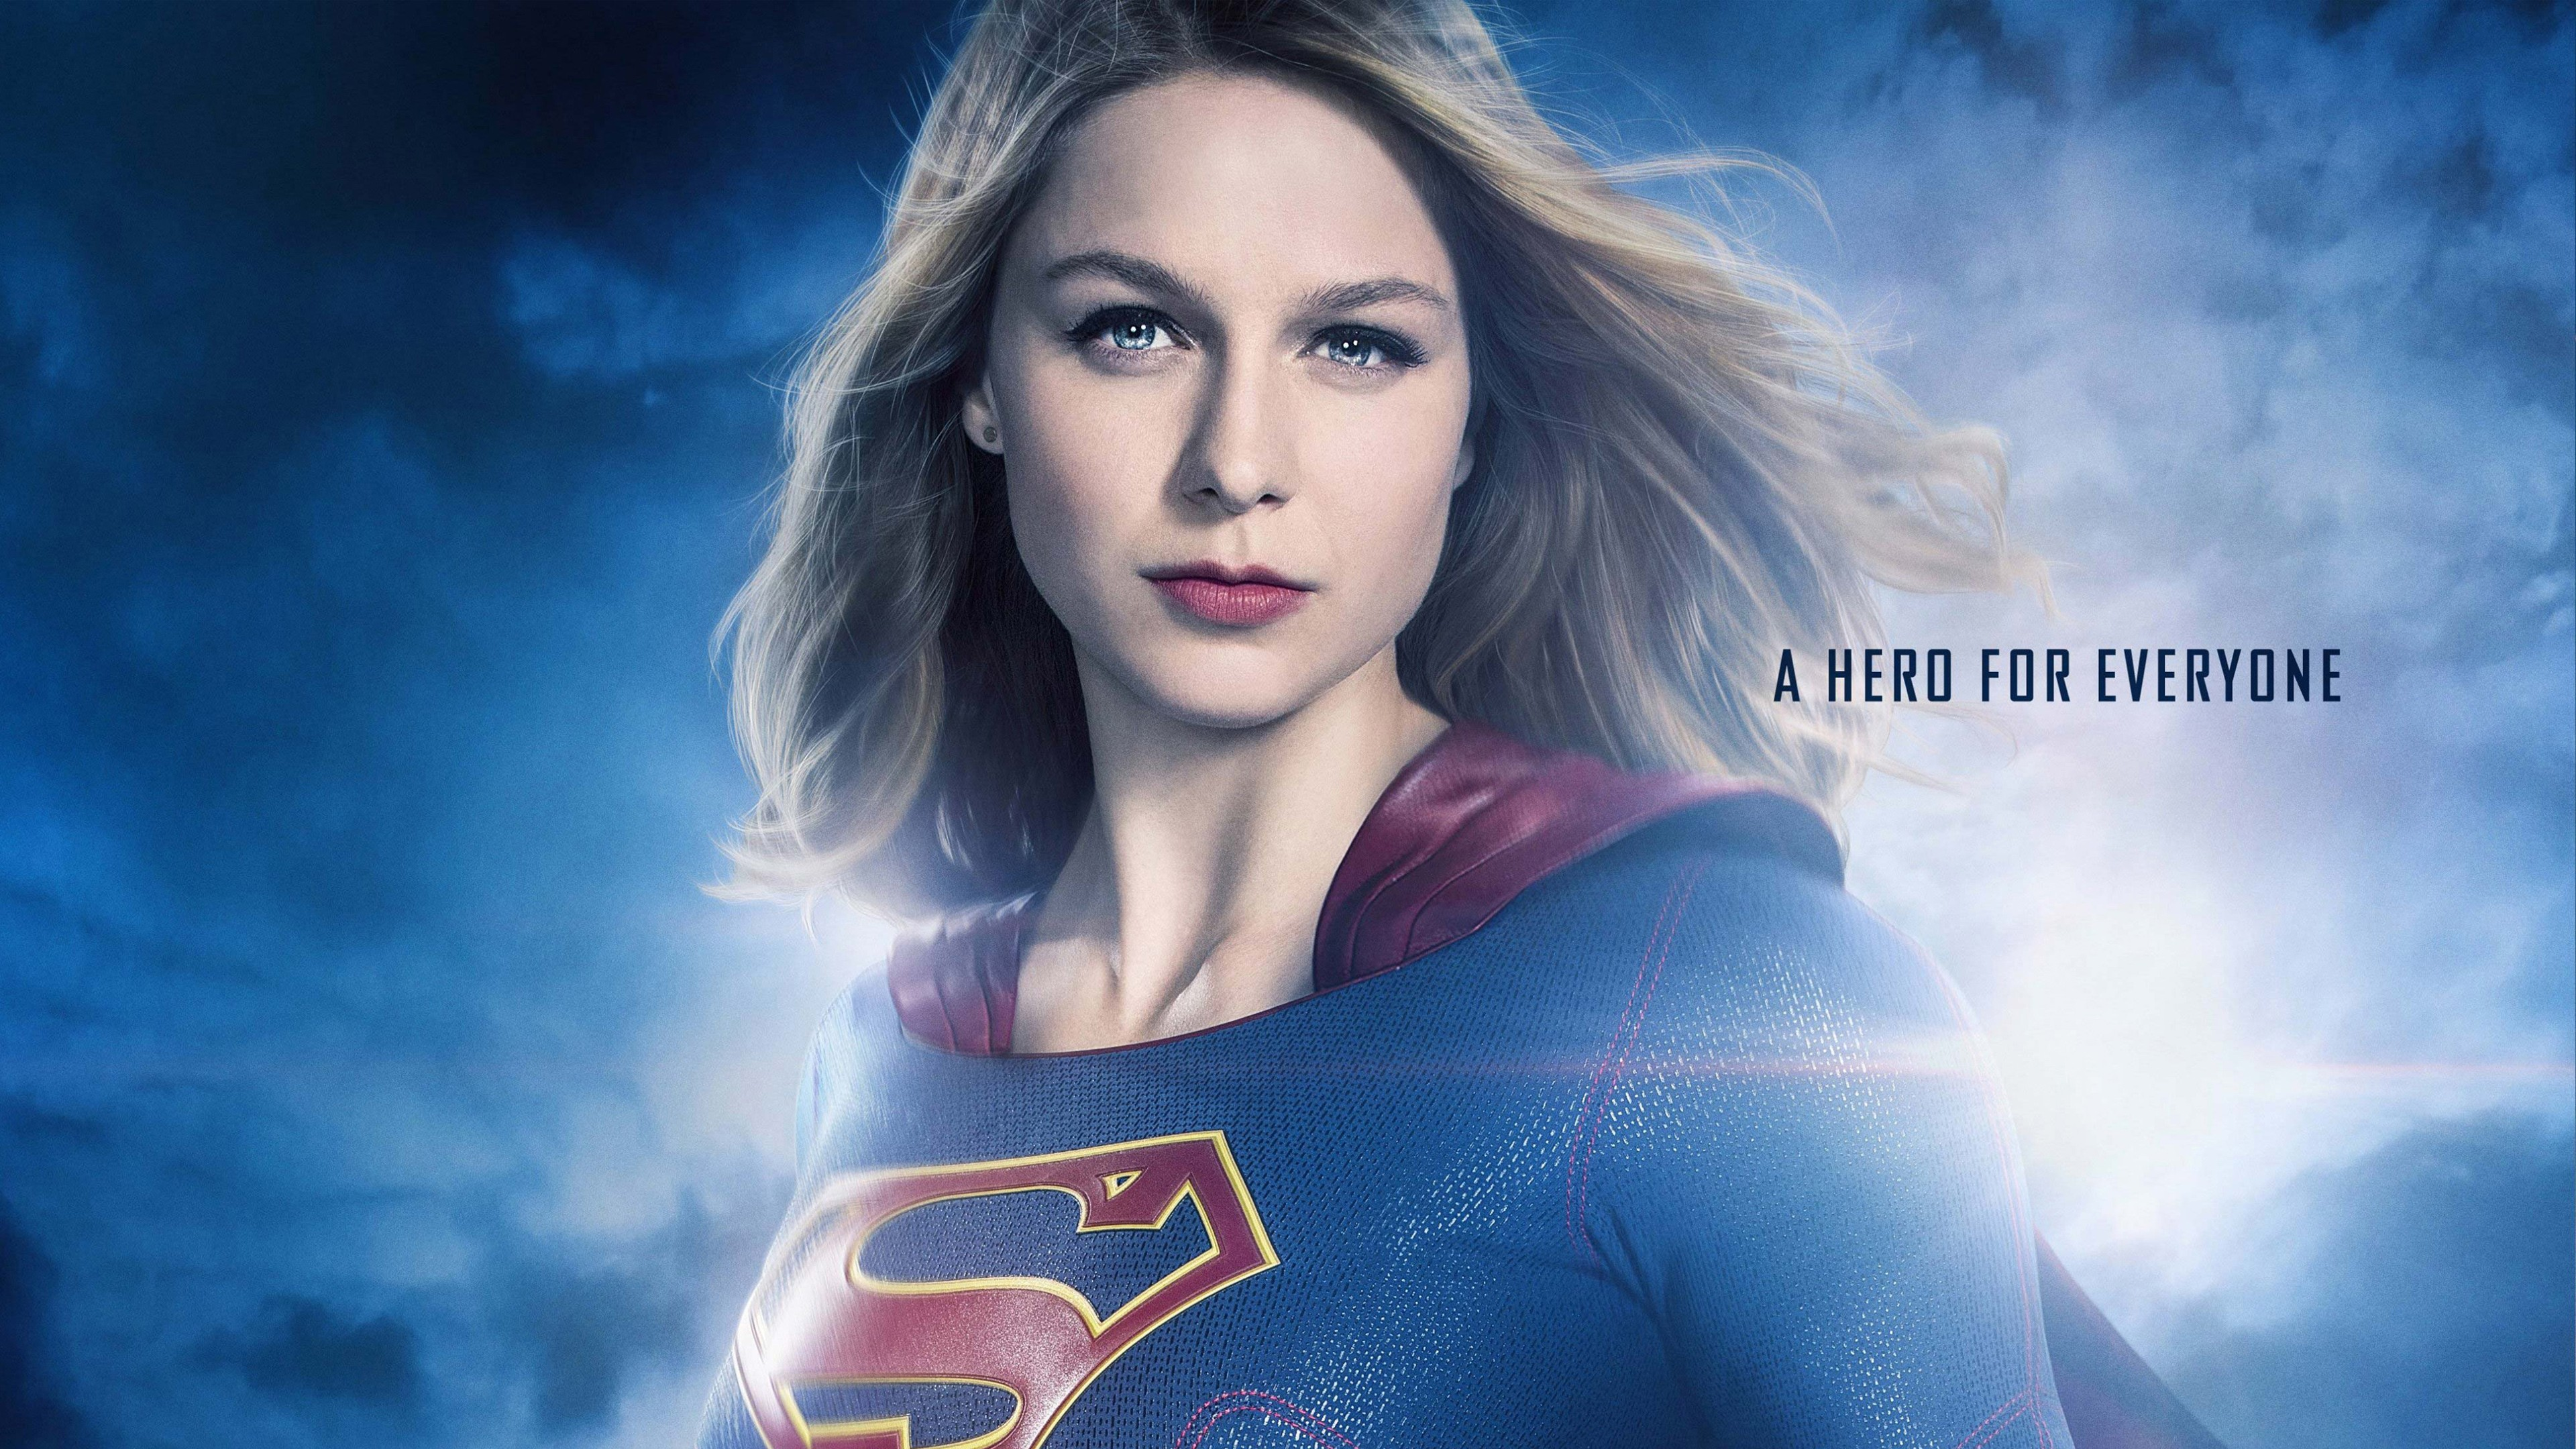 supergirl season 2 wallpaper 4k background